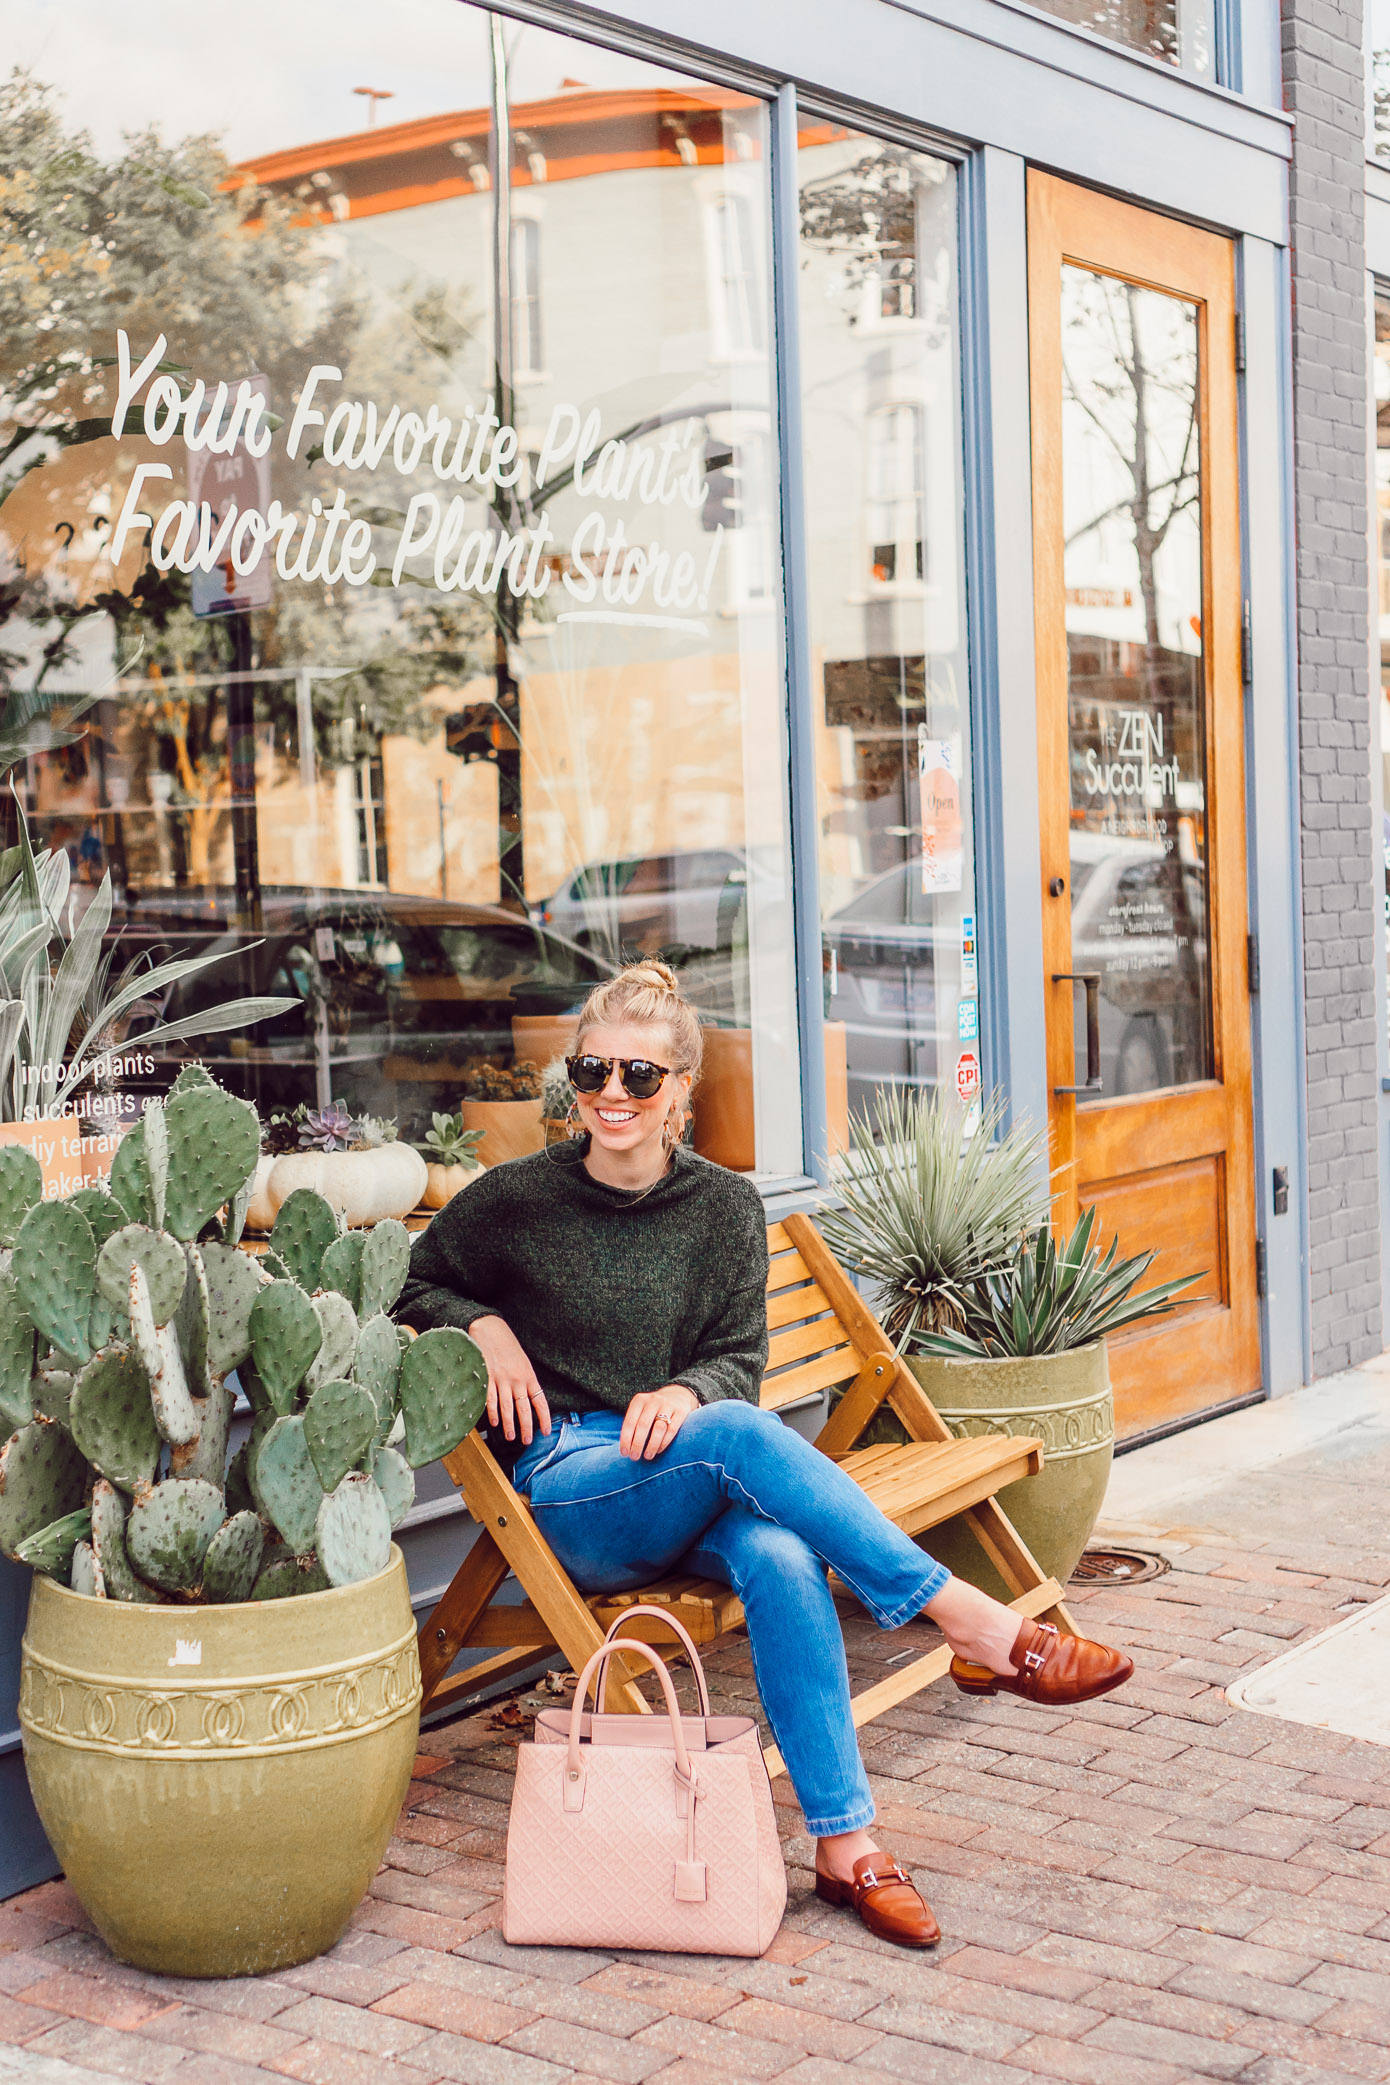 Local Shops in Raleigh NC   48 Hour Raleigh NC Itinerary   Raleigh NC Travel Guide featured on Louella Reese